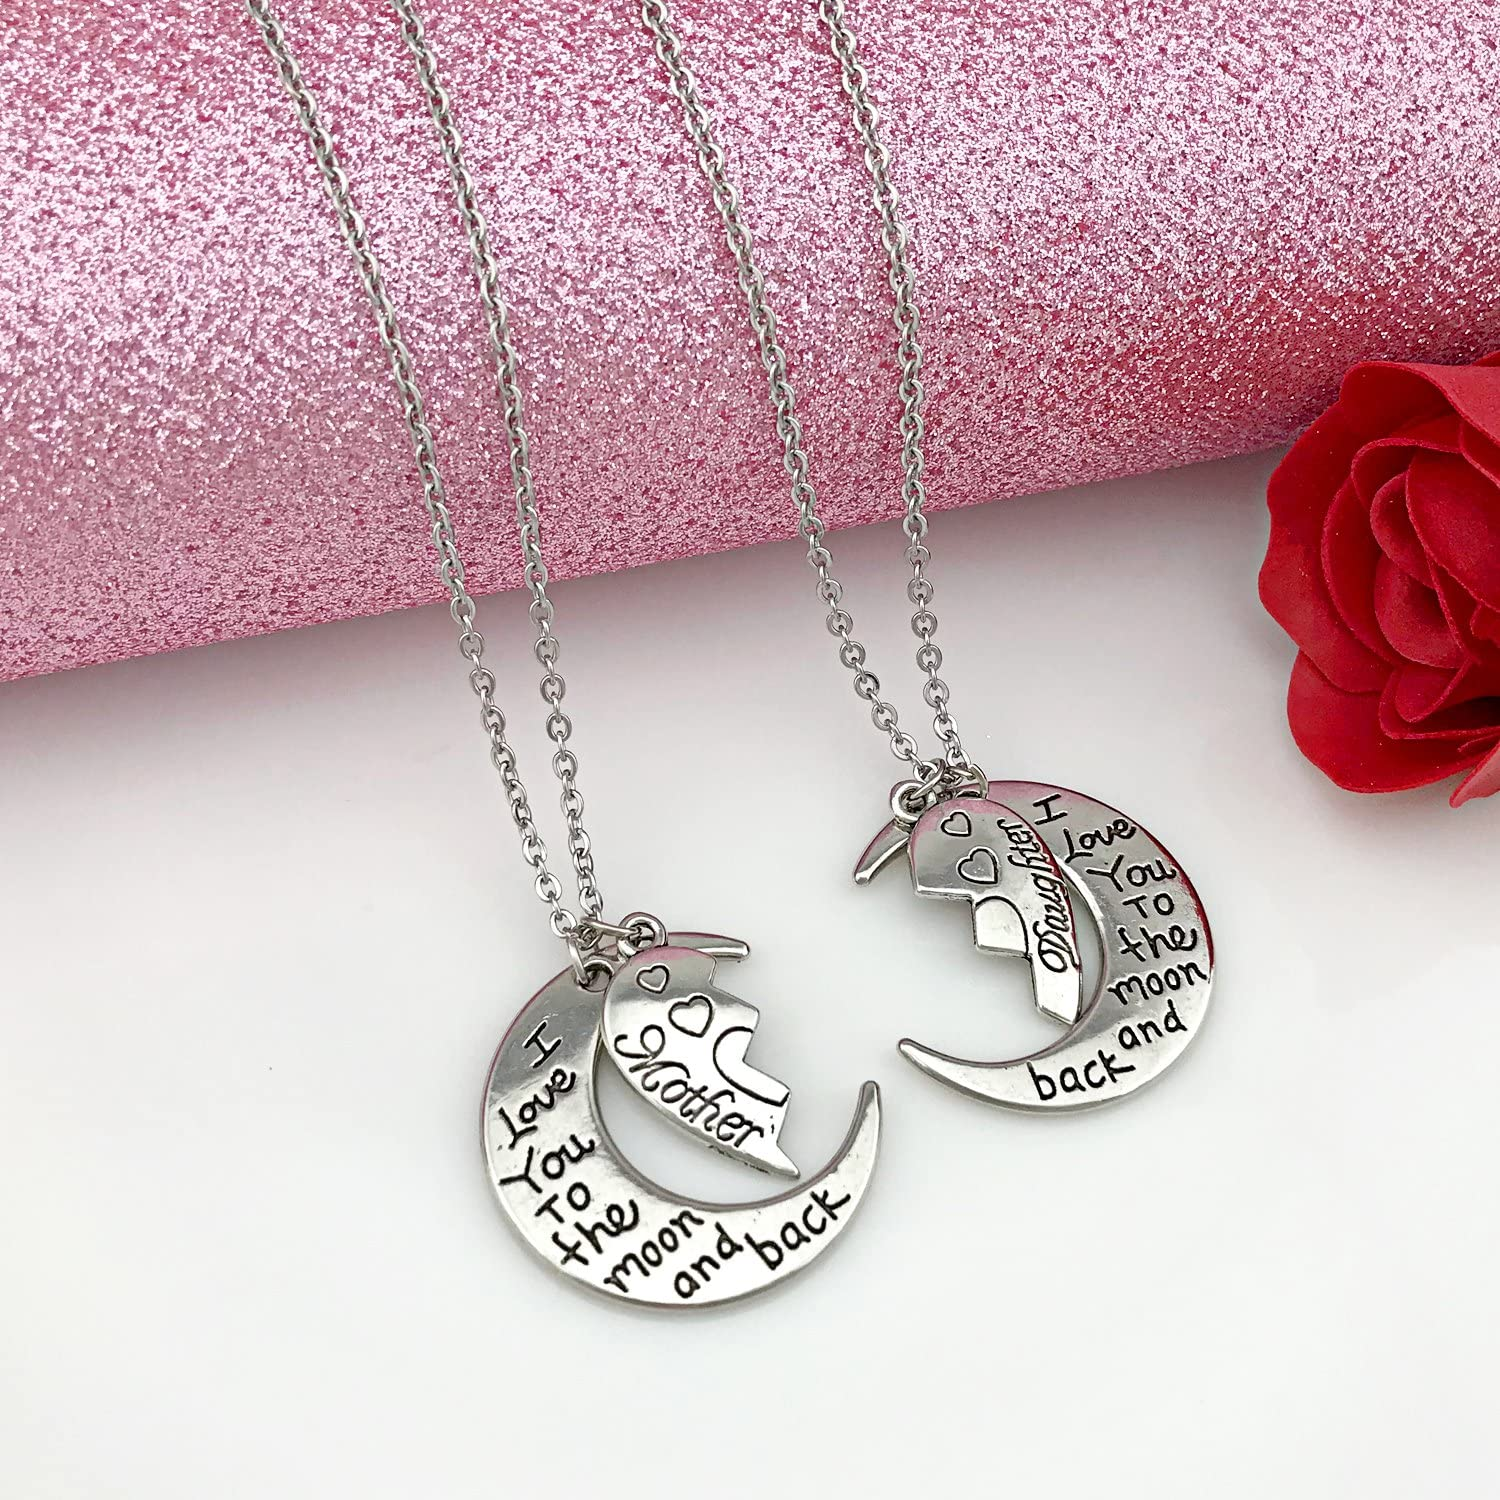 Amazon Com Youfeng I Love You To The Moon And Back Mother Daughter Moon Love Heart Necklace Pendant 2pc Mom Daughter Necklace Jewelry